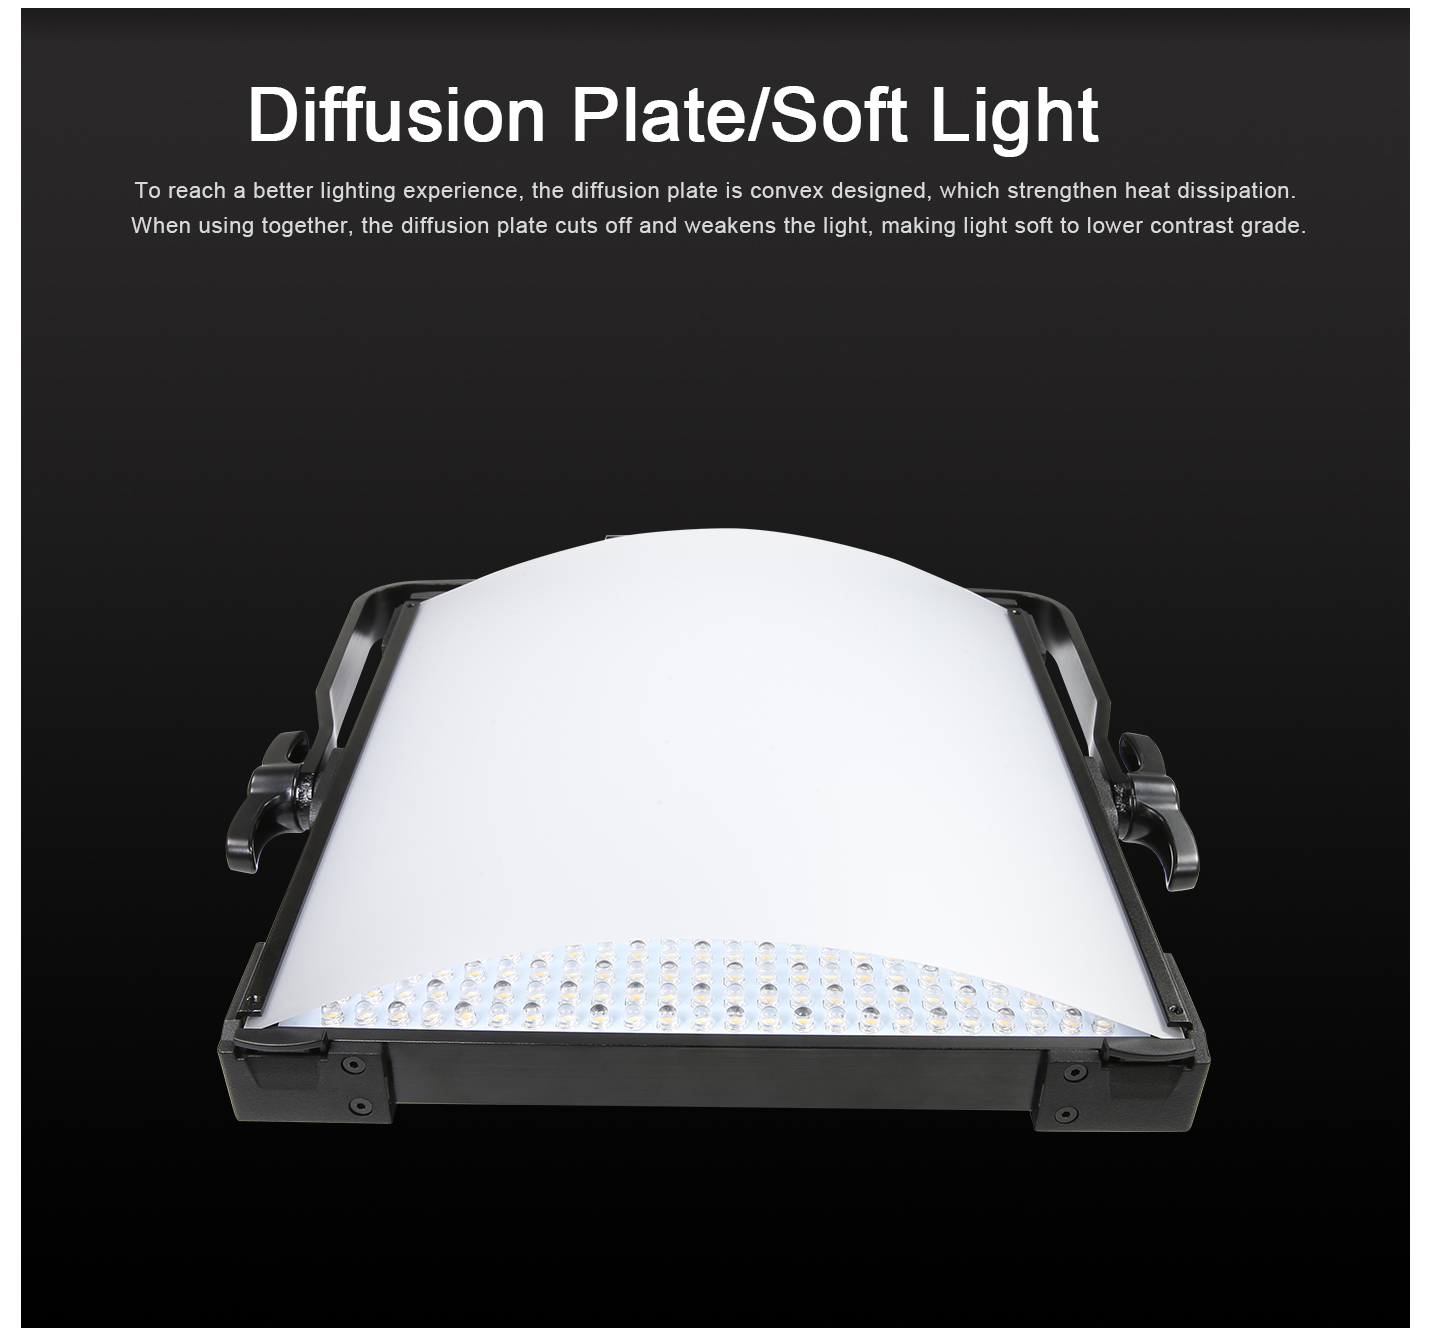 Diffusion Plate/Soft Light